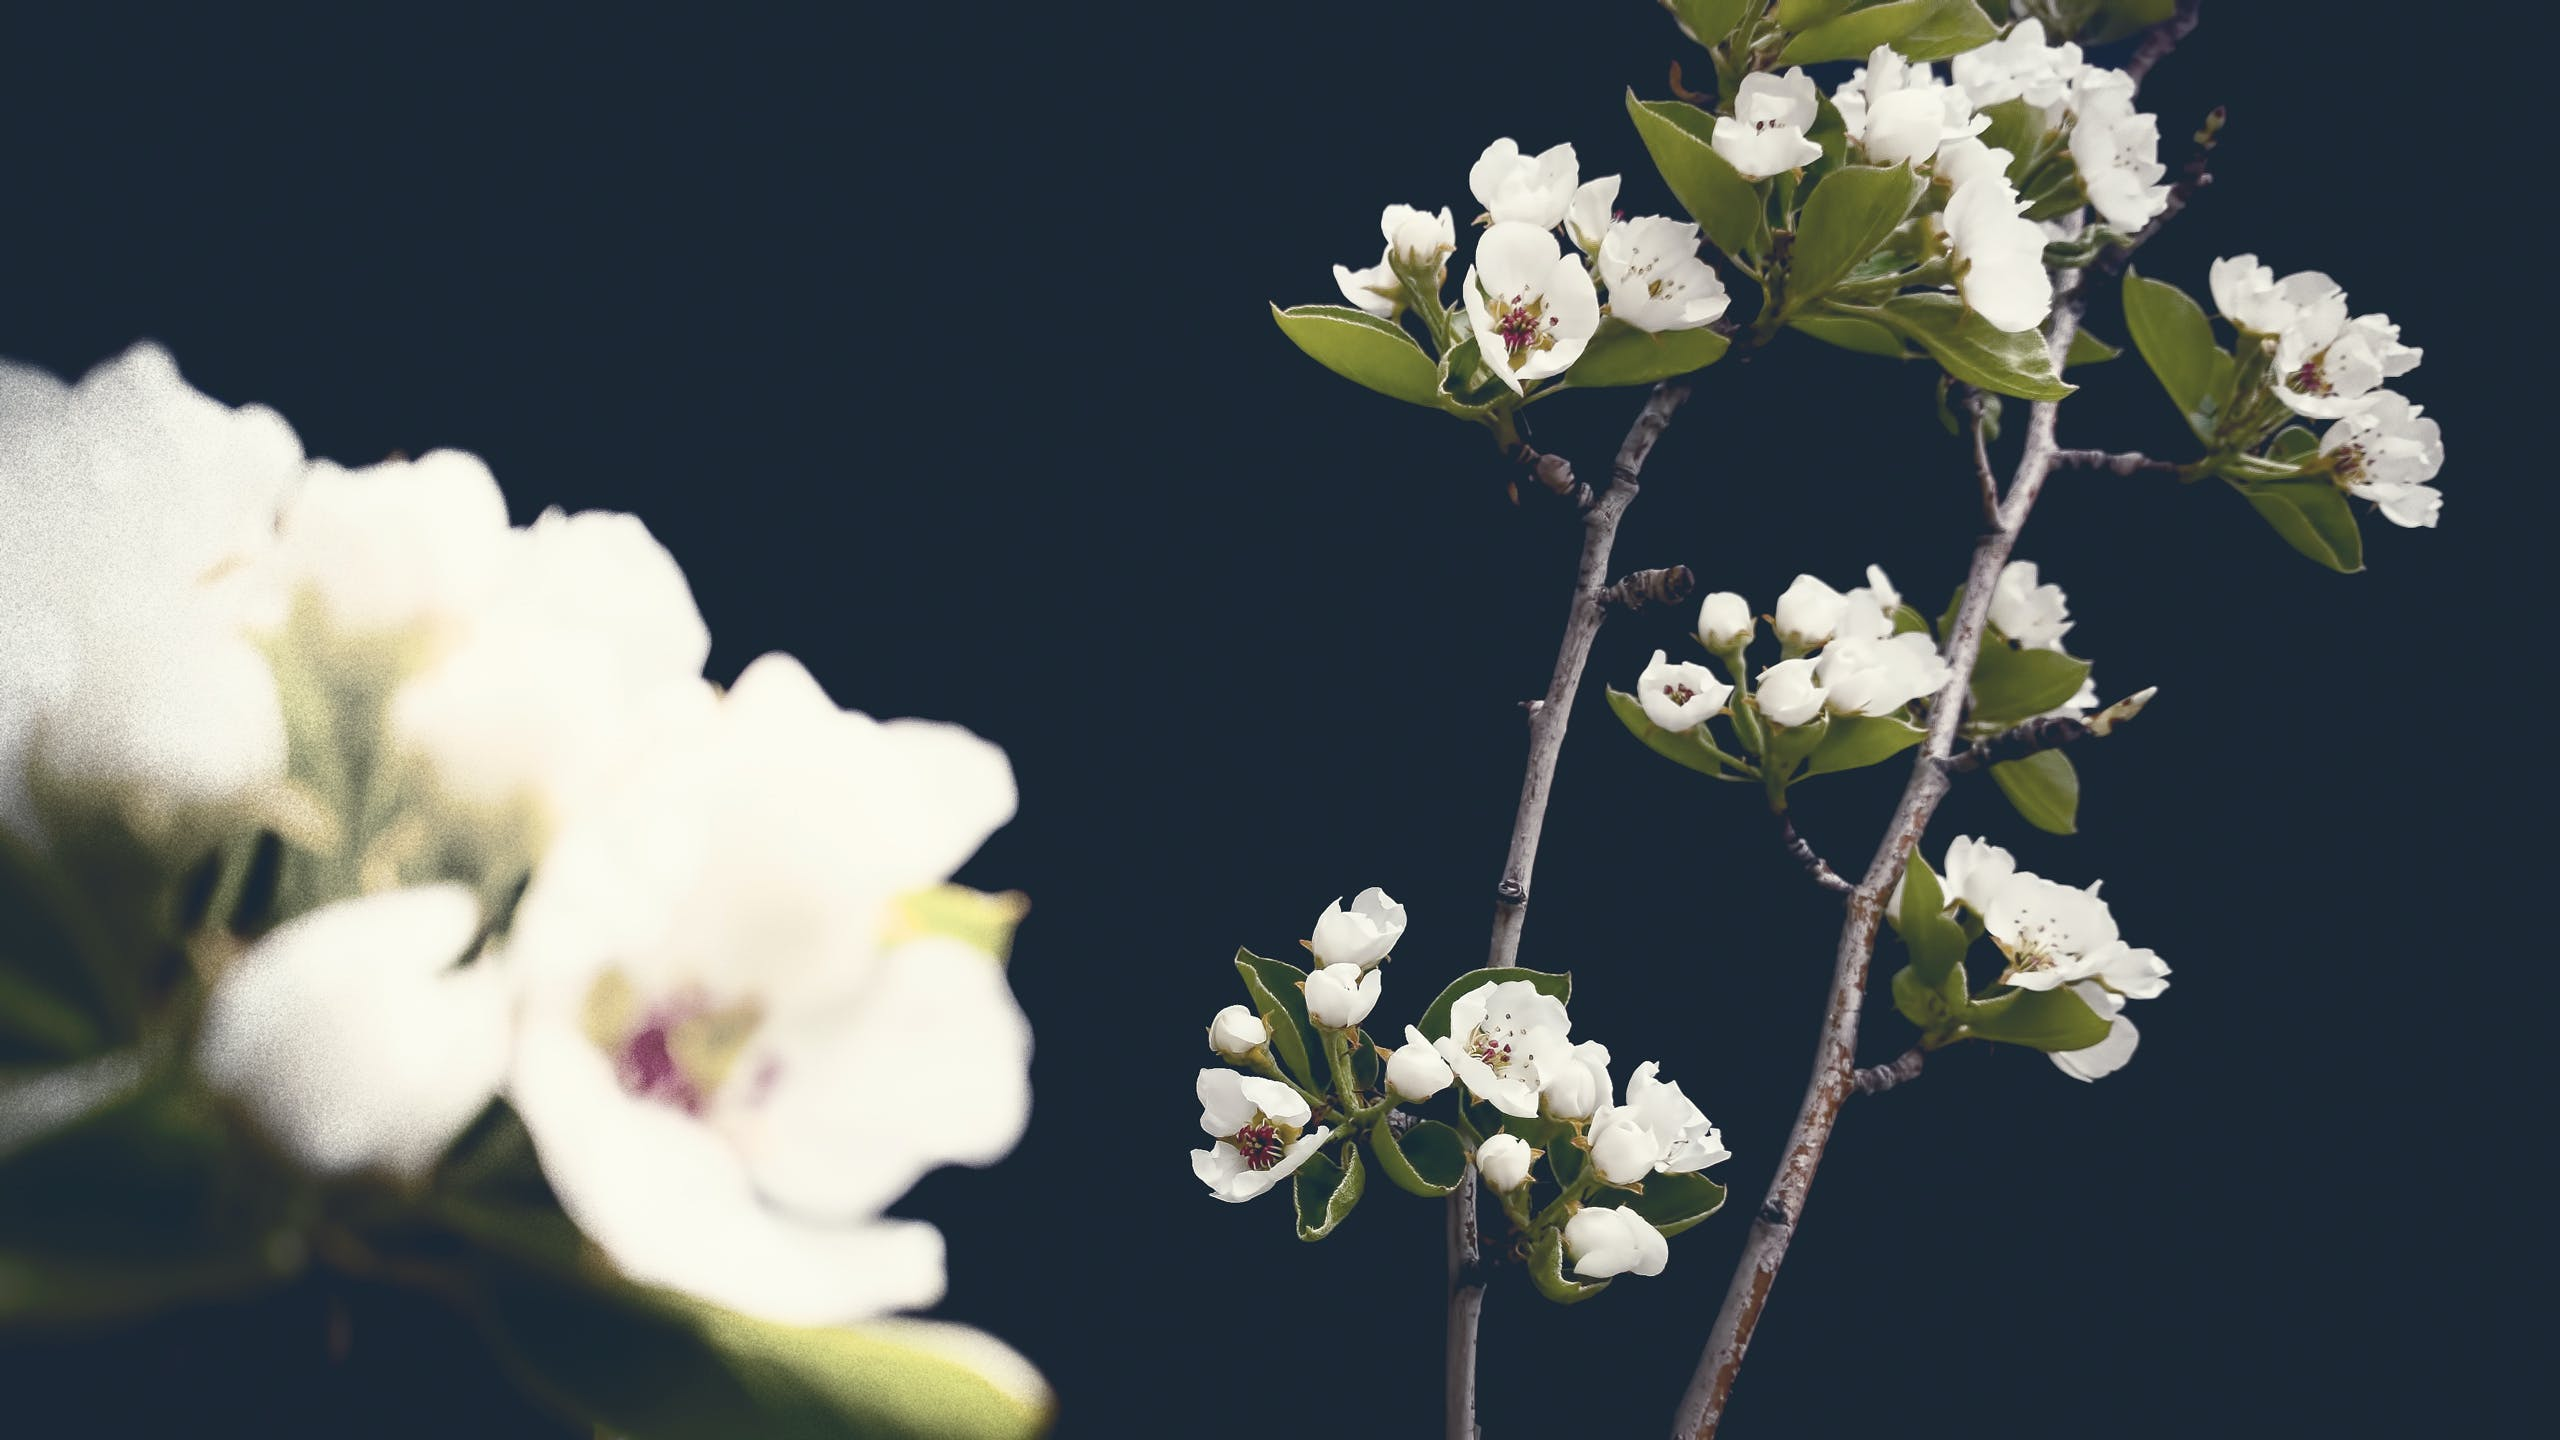 Free stock photo of flowers, blossoms, pear blossoms